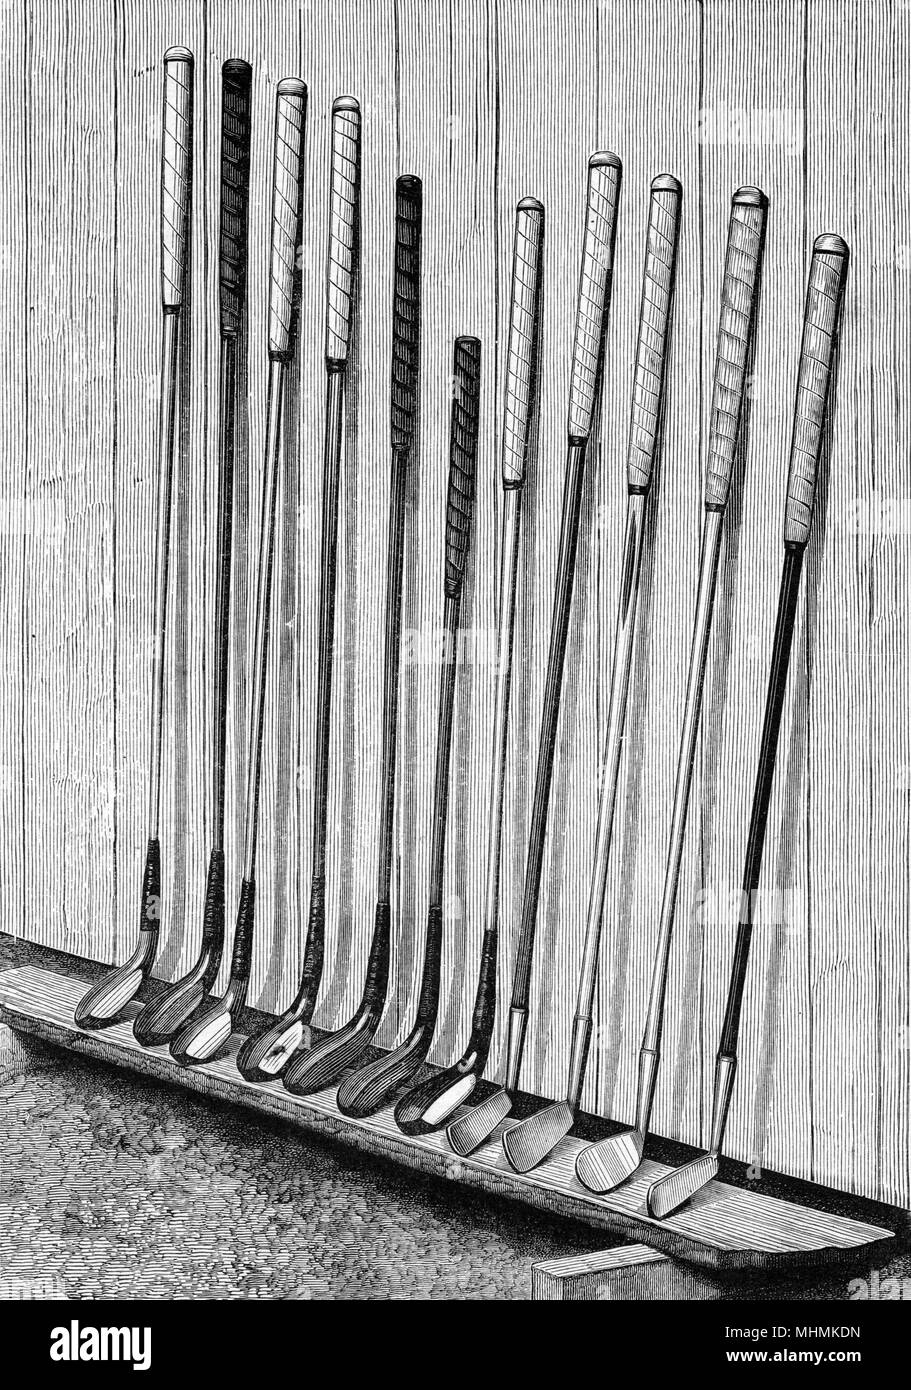 EQUIPMENT  A set of golf clubs.       Date: 1893 - Stock Image